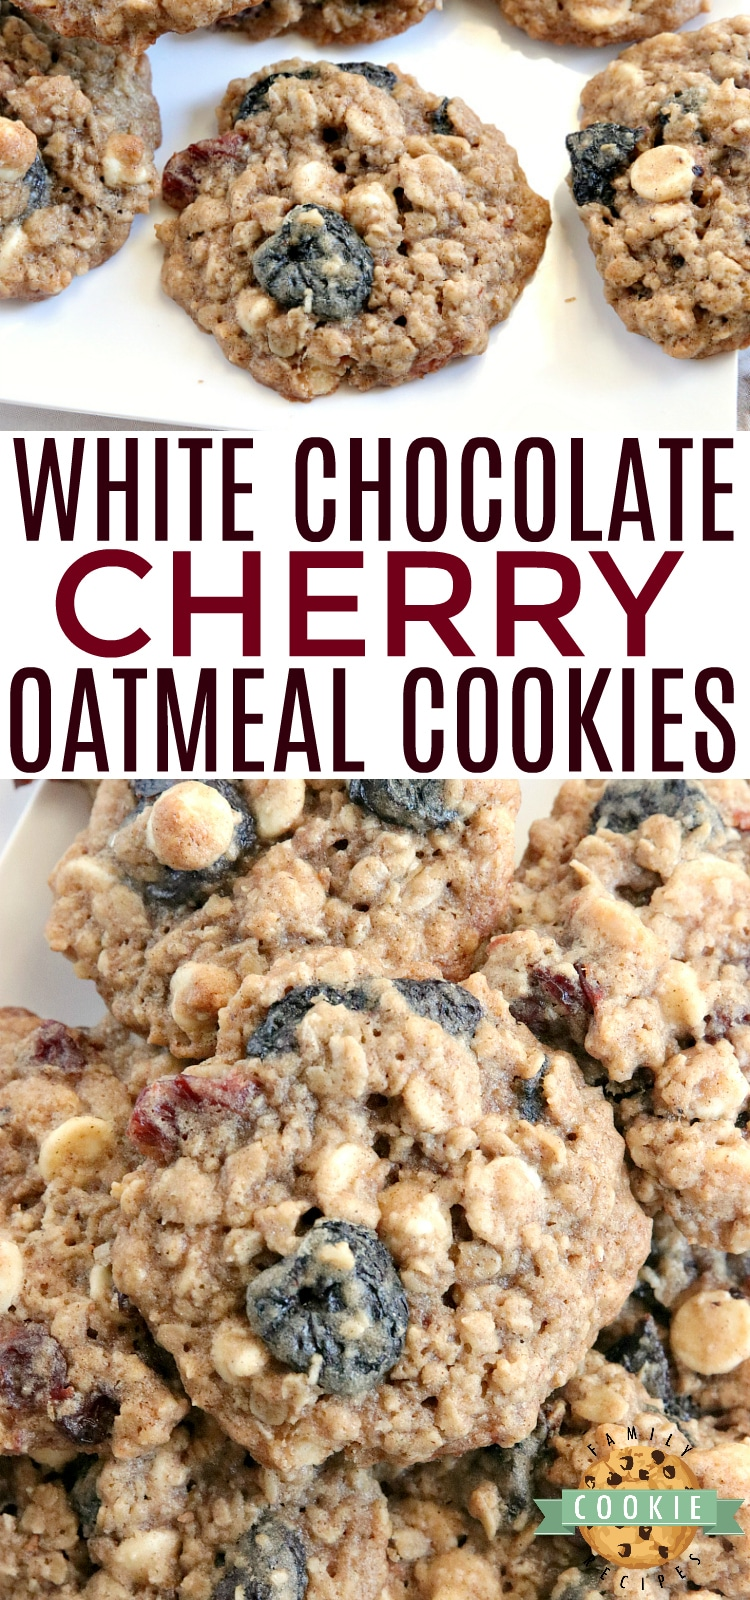 White Chocolate Cherry Oatmeal Cookies are made by adding white chocolate chips and dried cherries to the most amazing oatmeal cookie recipe ever! These cookies are soft and chewy and the flavors are incredible. via @buttergirls